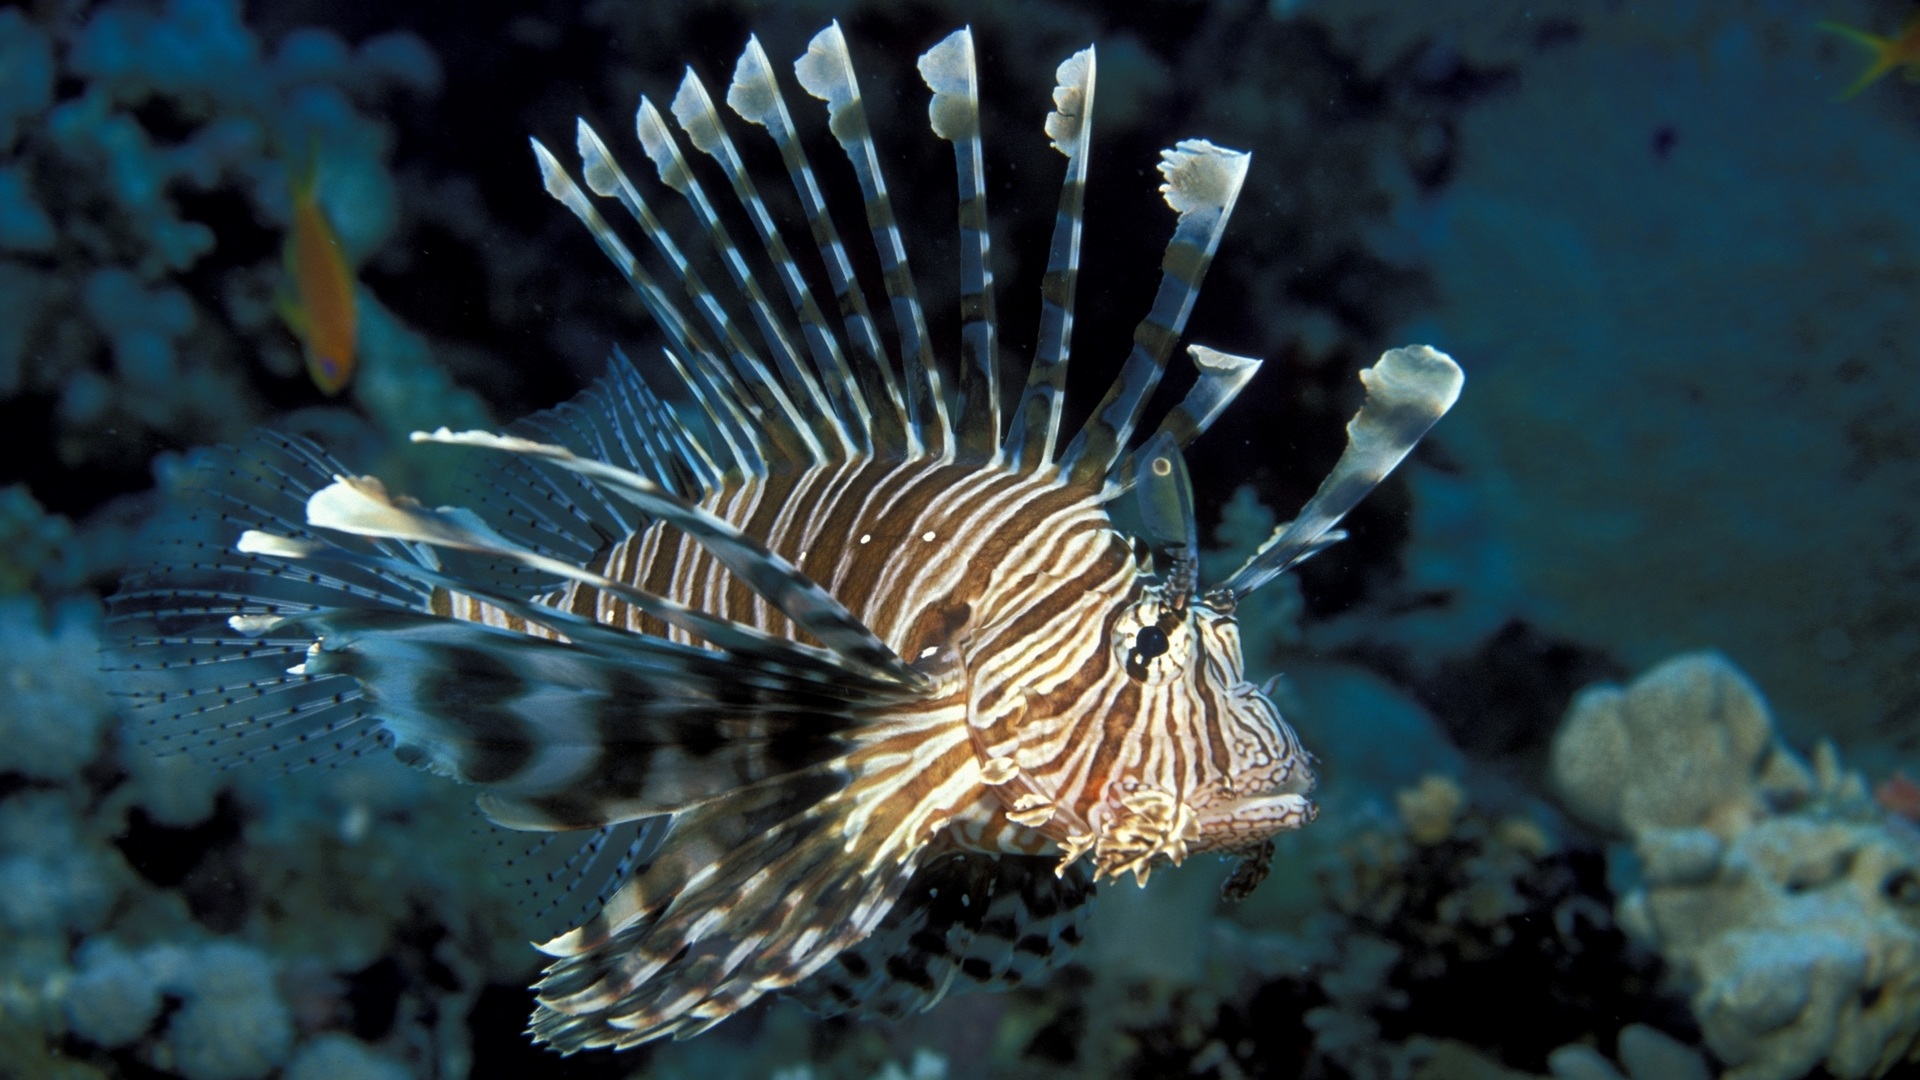 Paul George Wallpaper Hd Lionfish Wallpapers Archives Hdwallsource Com